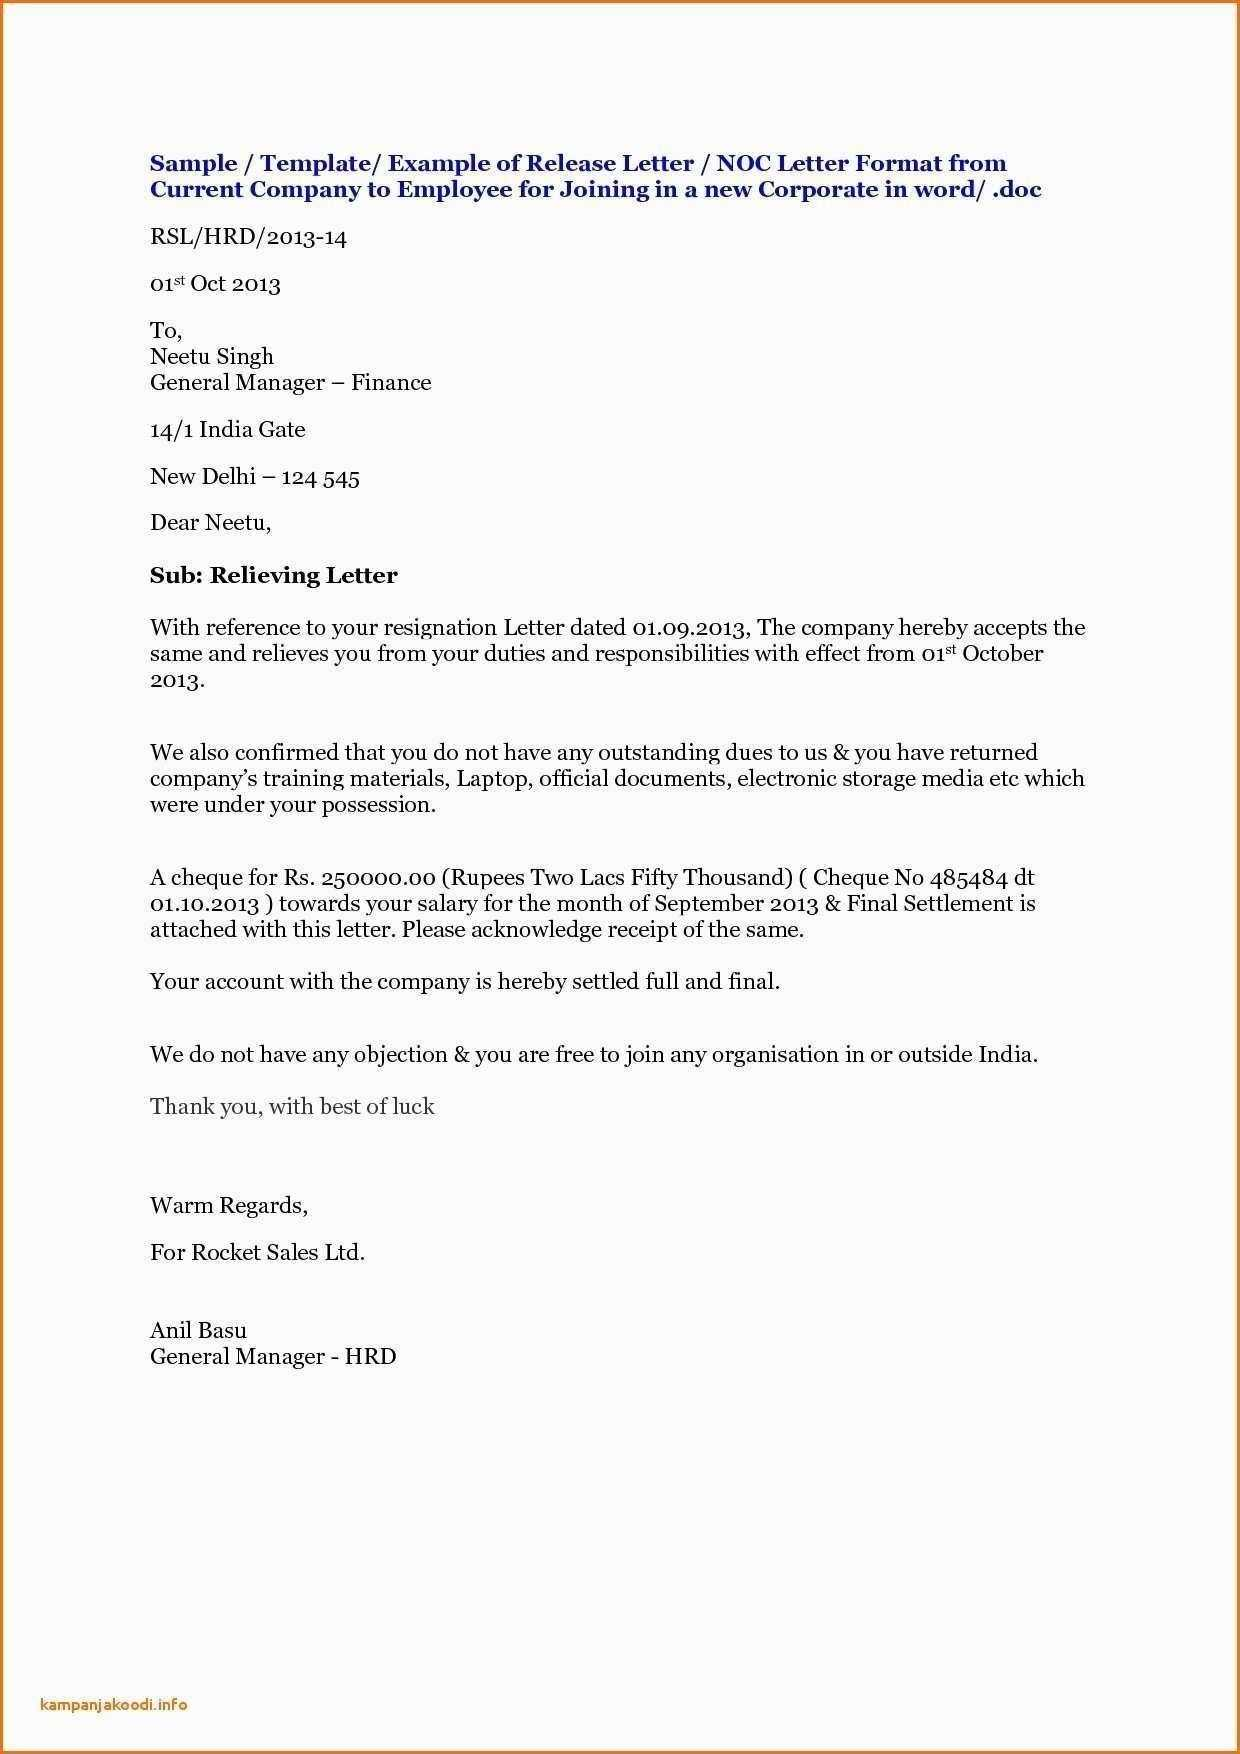 Pinmy Creative Communities On Letter Format | Lettering for Noc Report Template